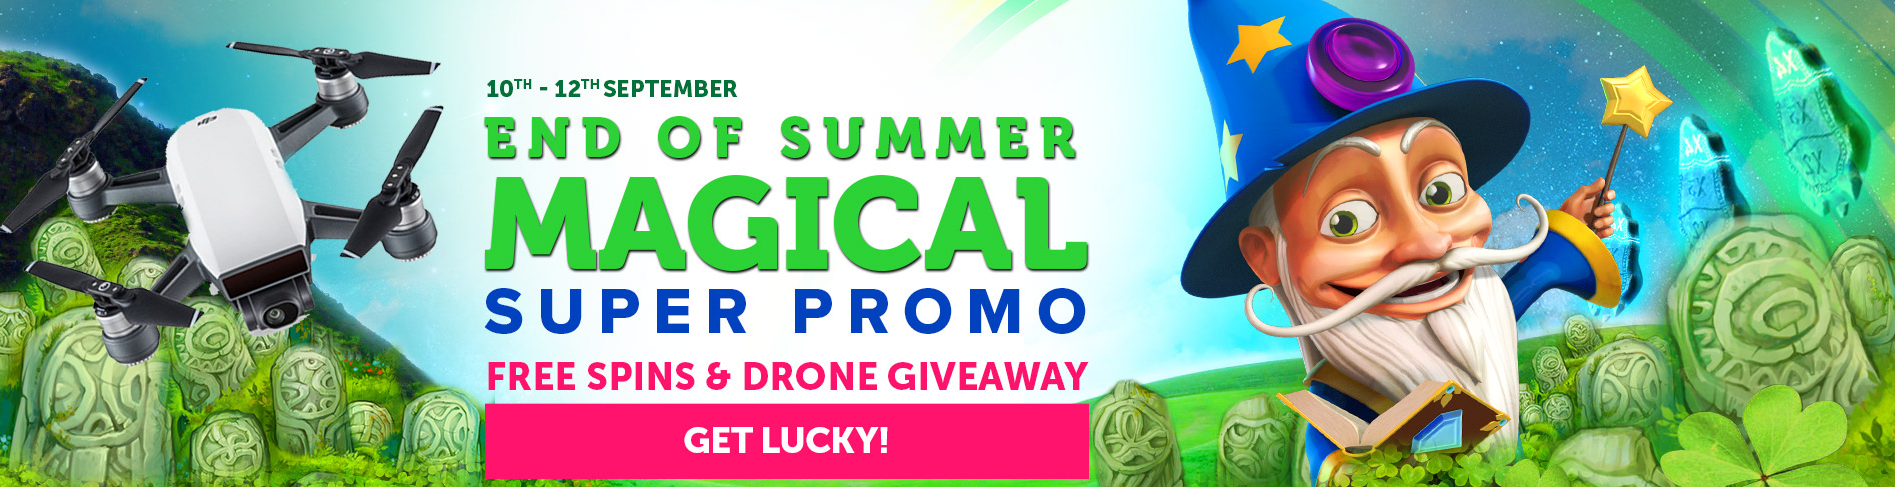 End of Summer promo at CasinoLuck